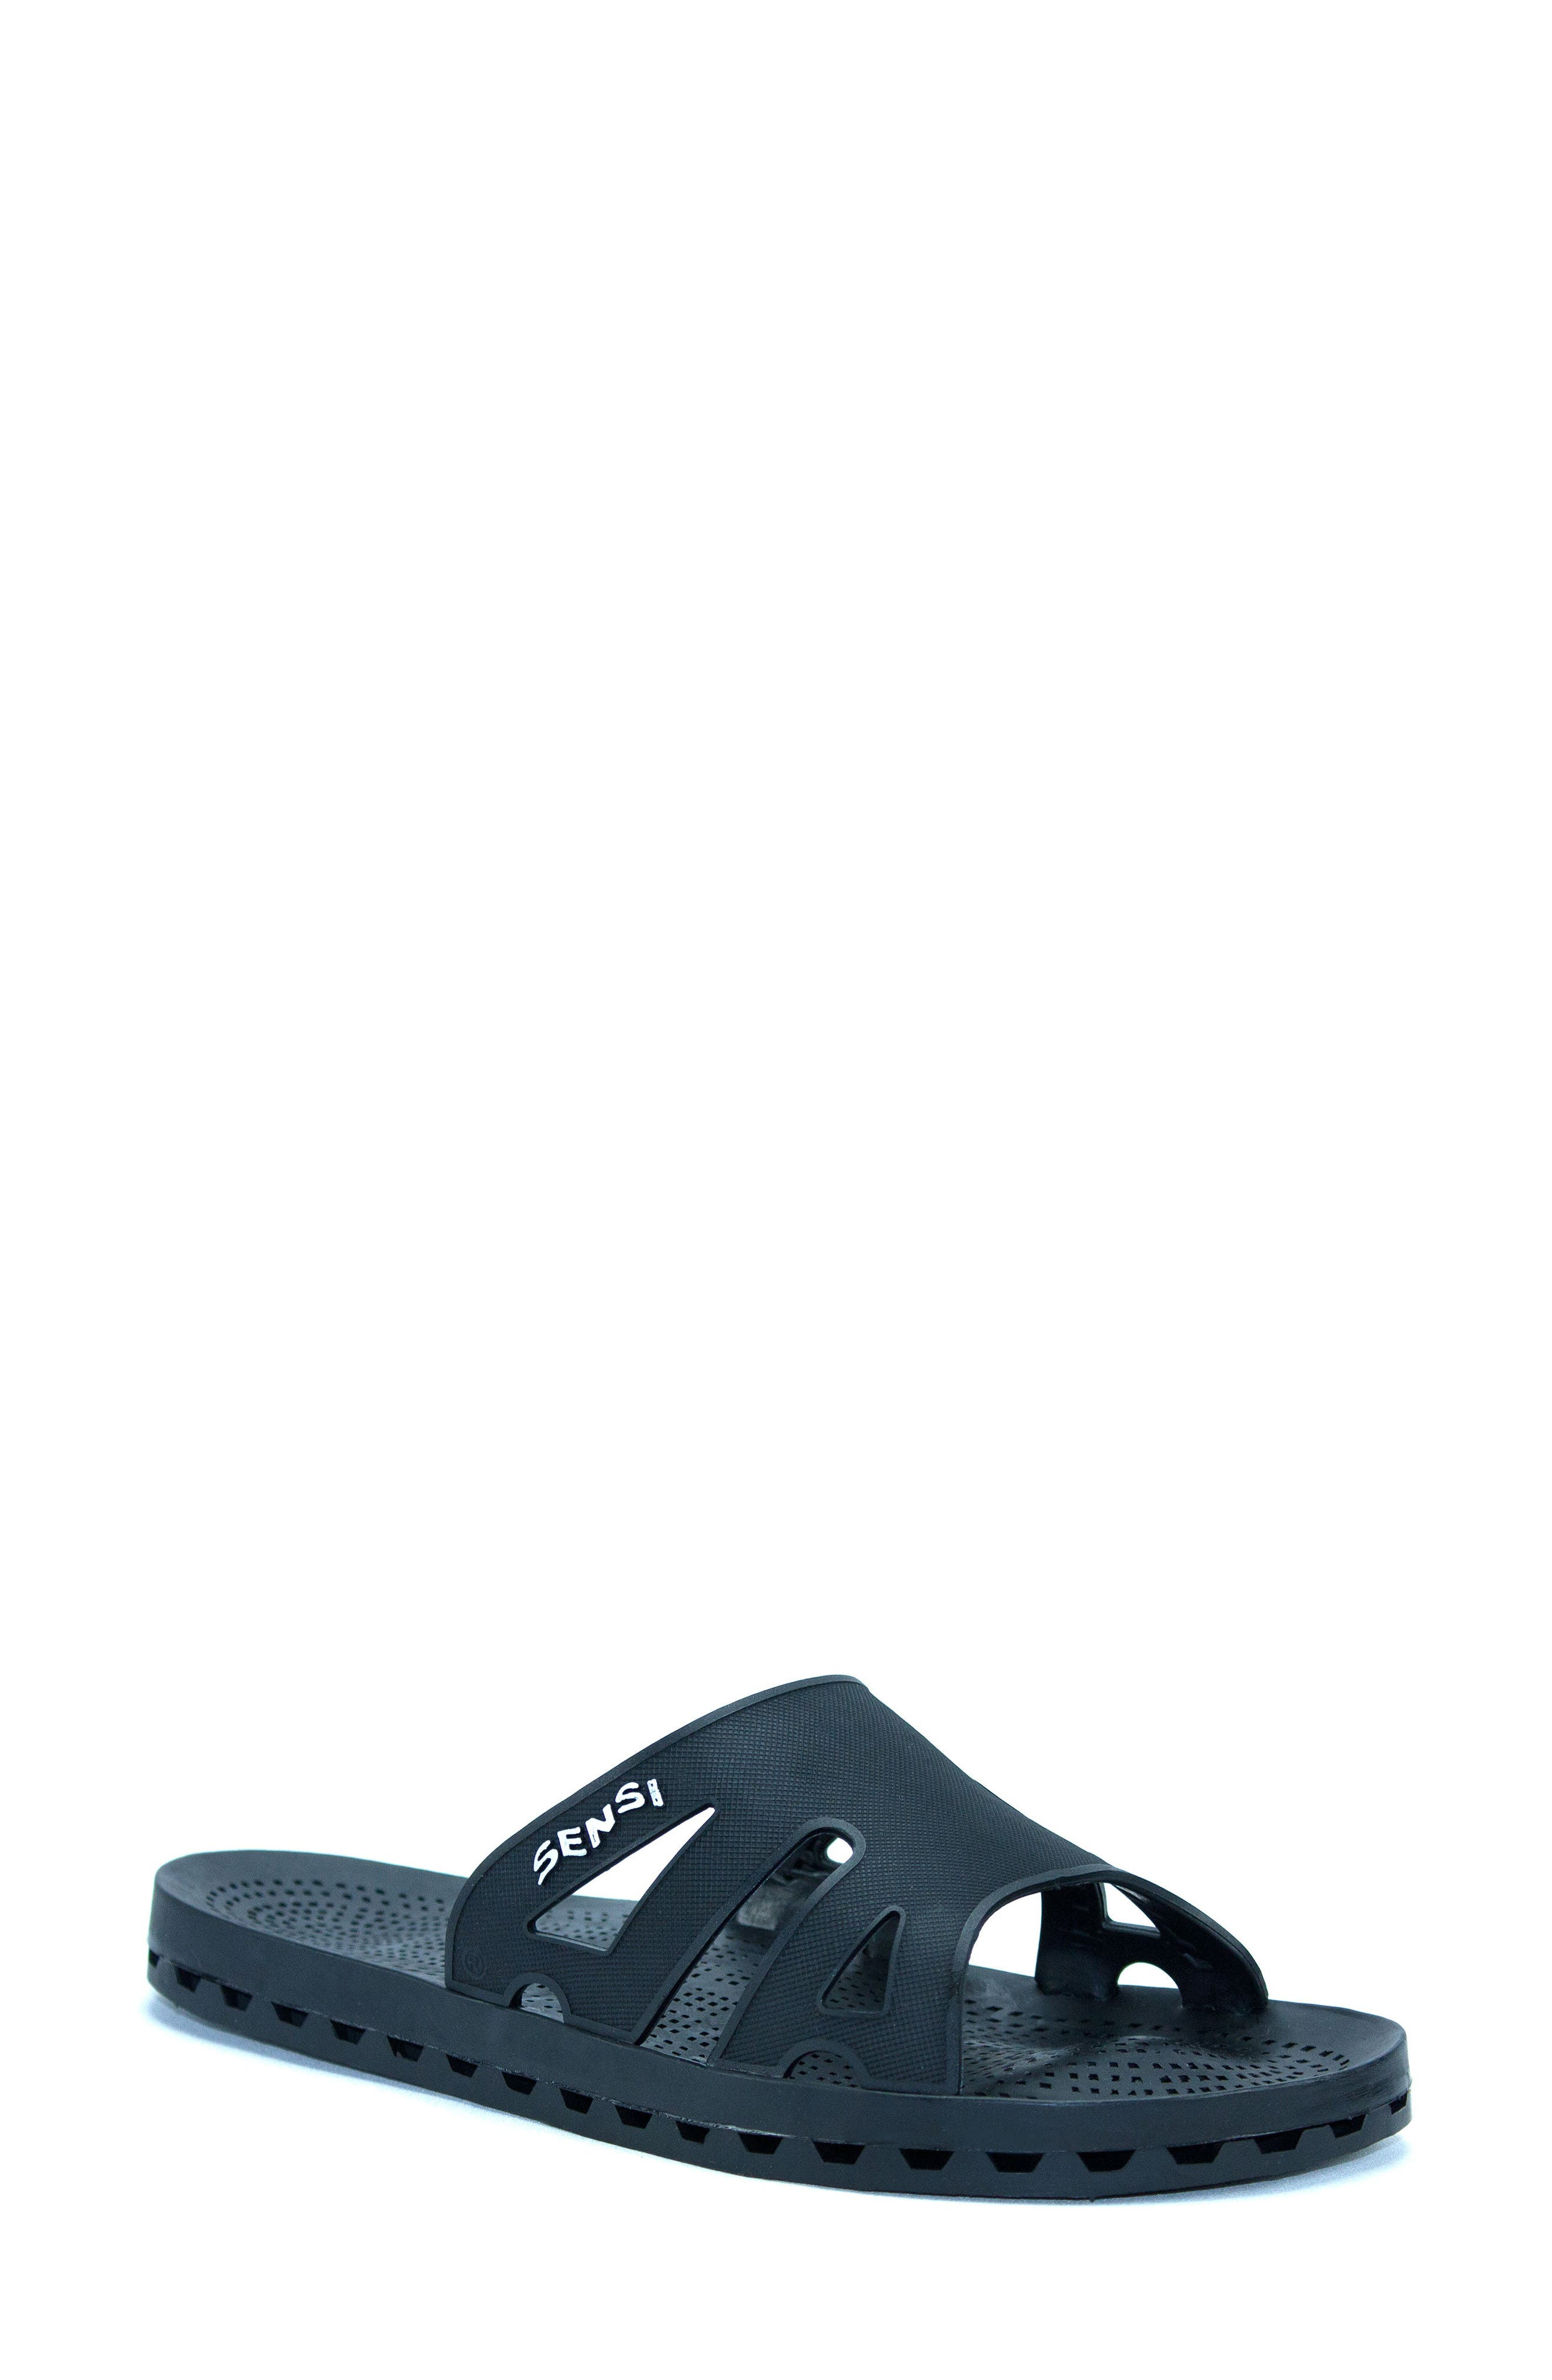 SENSI Regatta Slide Sandal, Main, color, 001